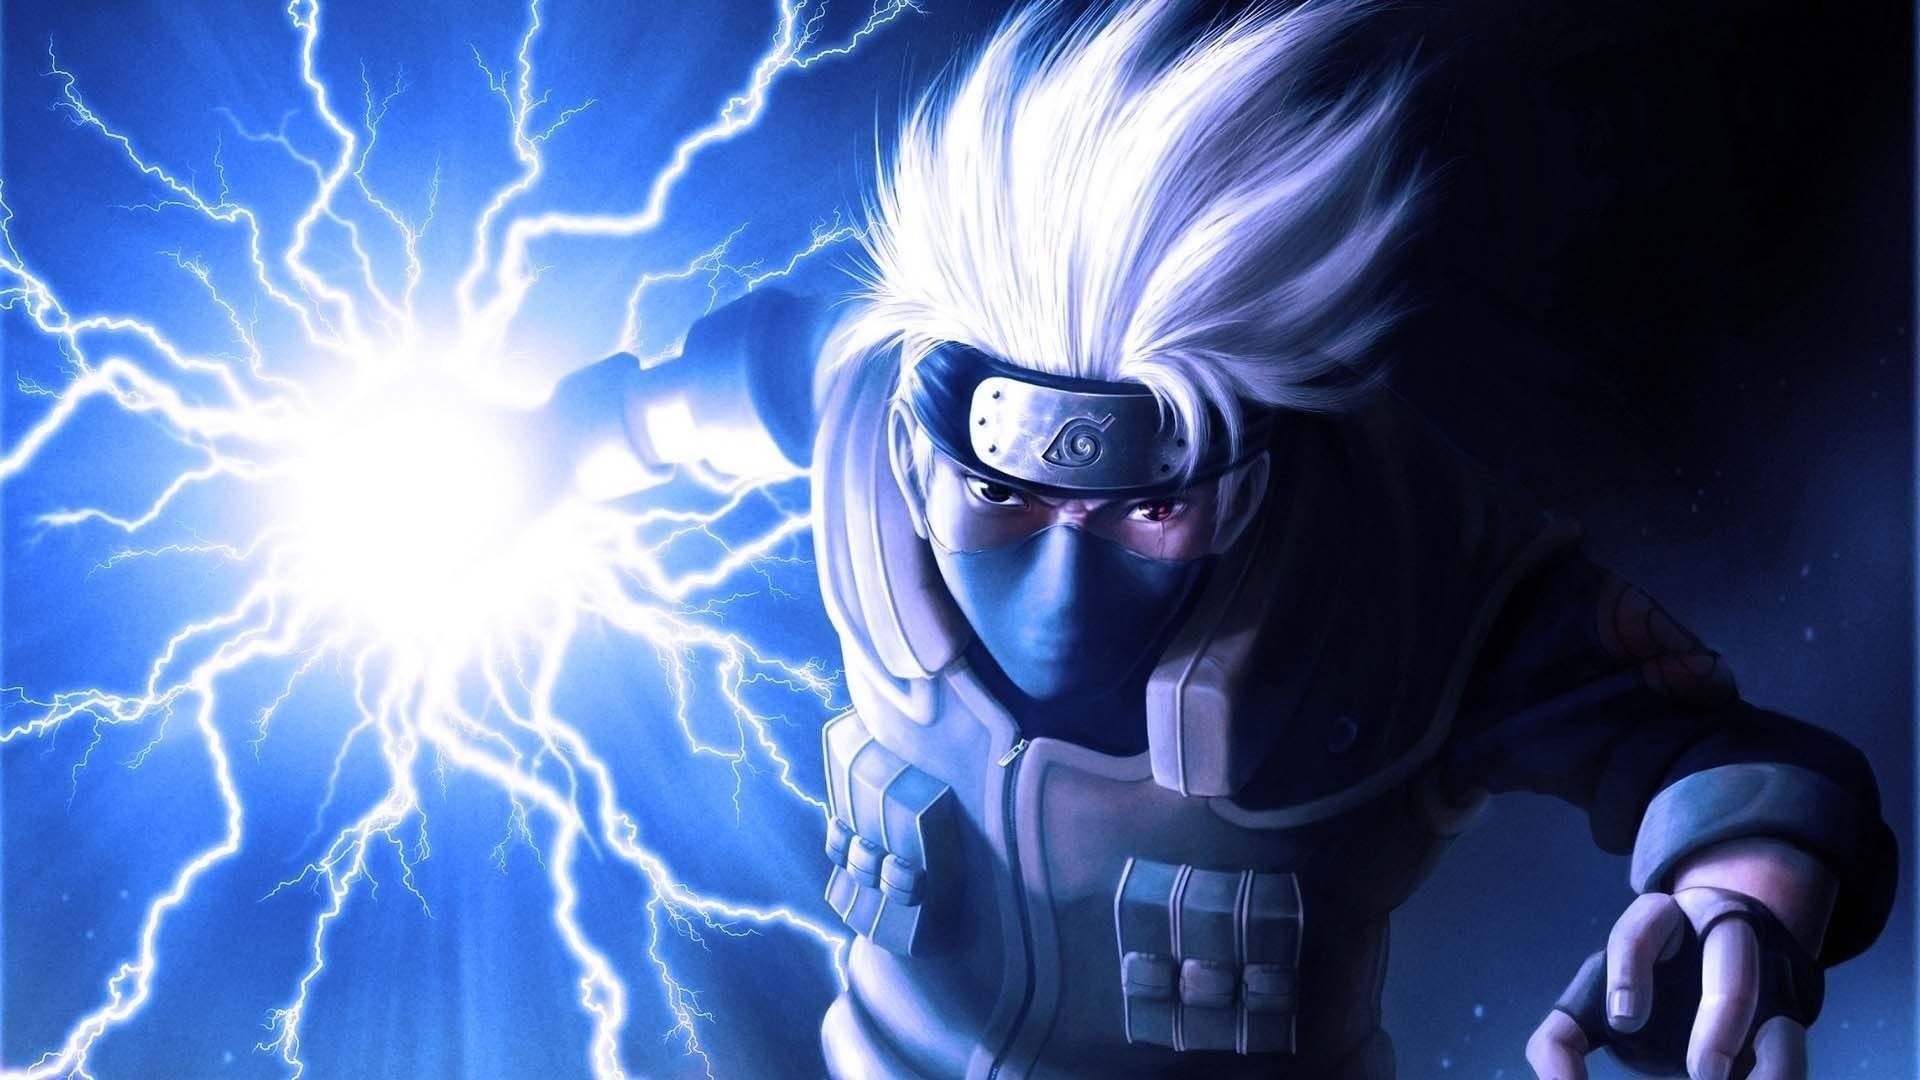 Trend In 2020 Cool Anime Wallpapers Anime Backgrounds Wallpapers Hd Anime Wallpapers